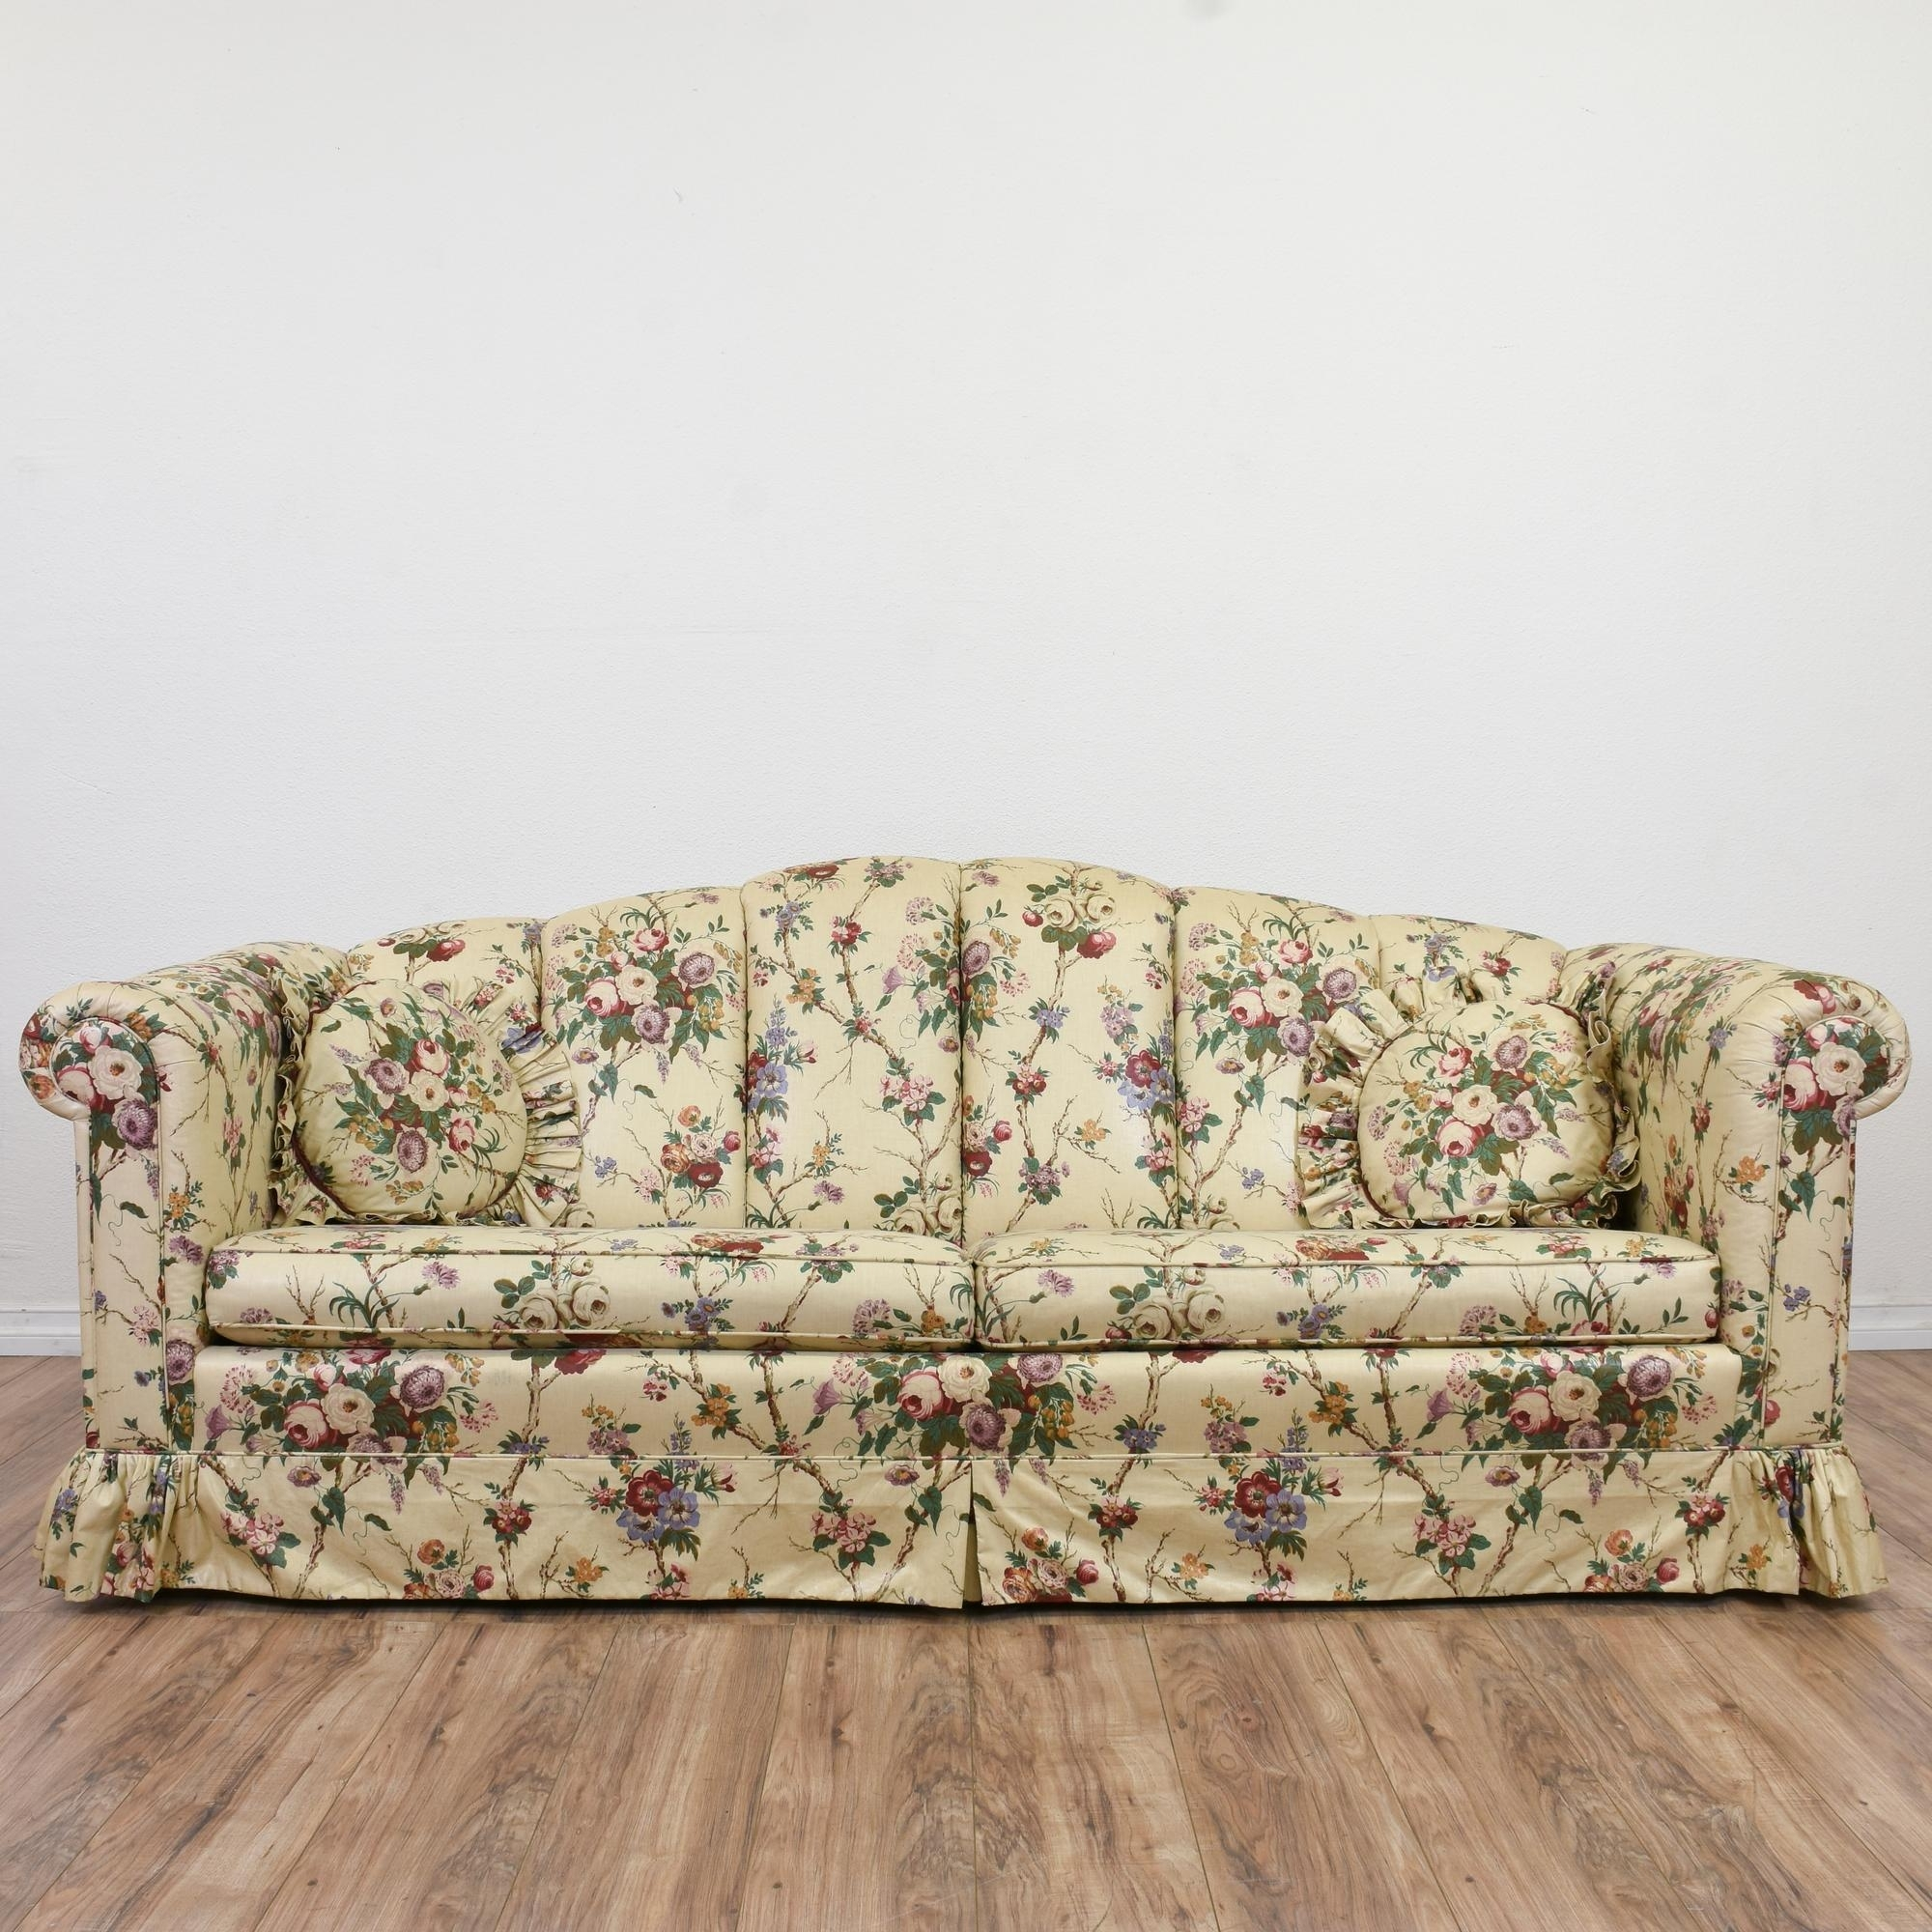 This Sofa Is Upholstered In A Durable Off White Beige, Pink And Pertaining To Popular Chintz Sofas (View 16 of 20)